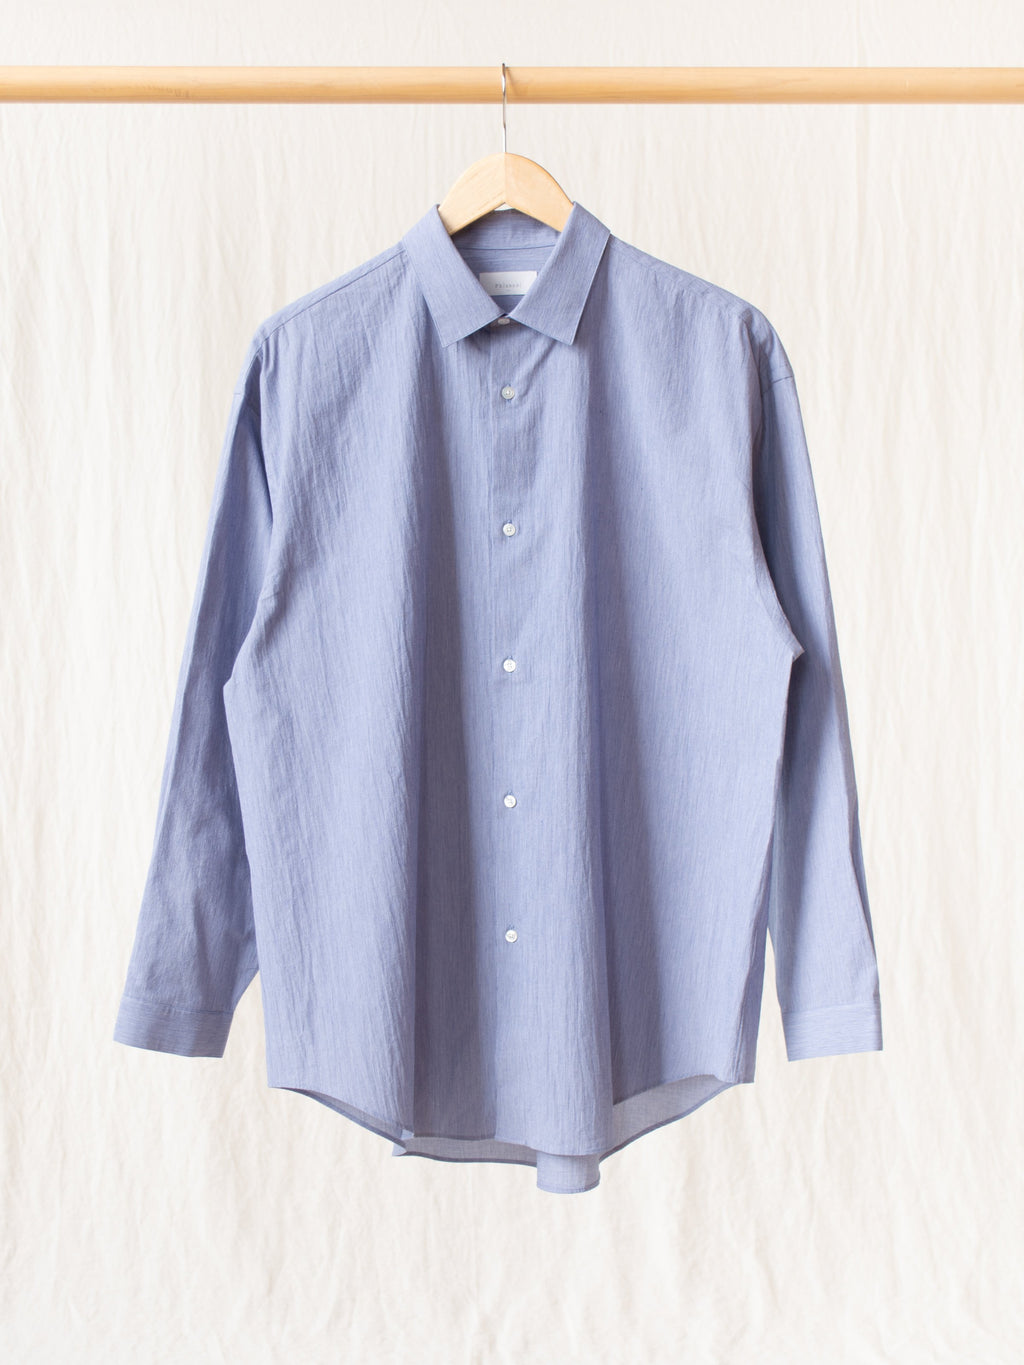 Cotton Voile Yarn Oversized Shirt - Blue